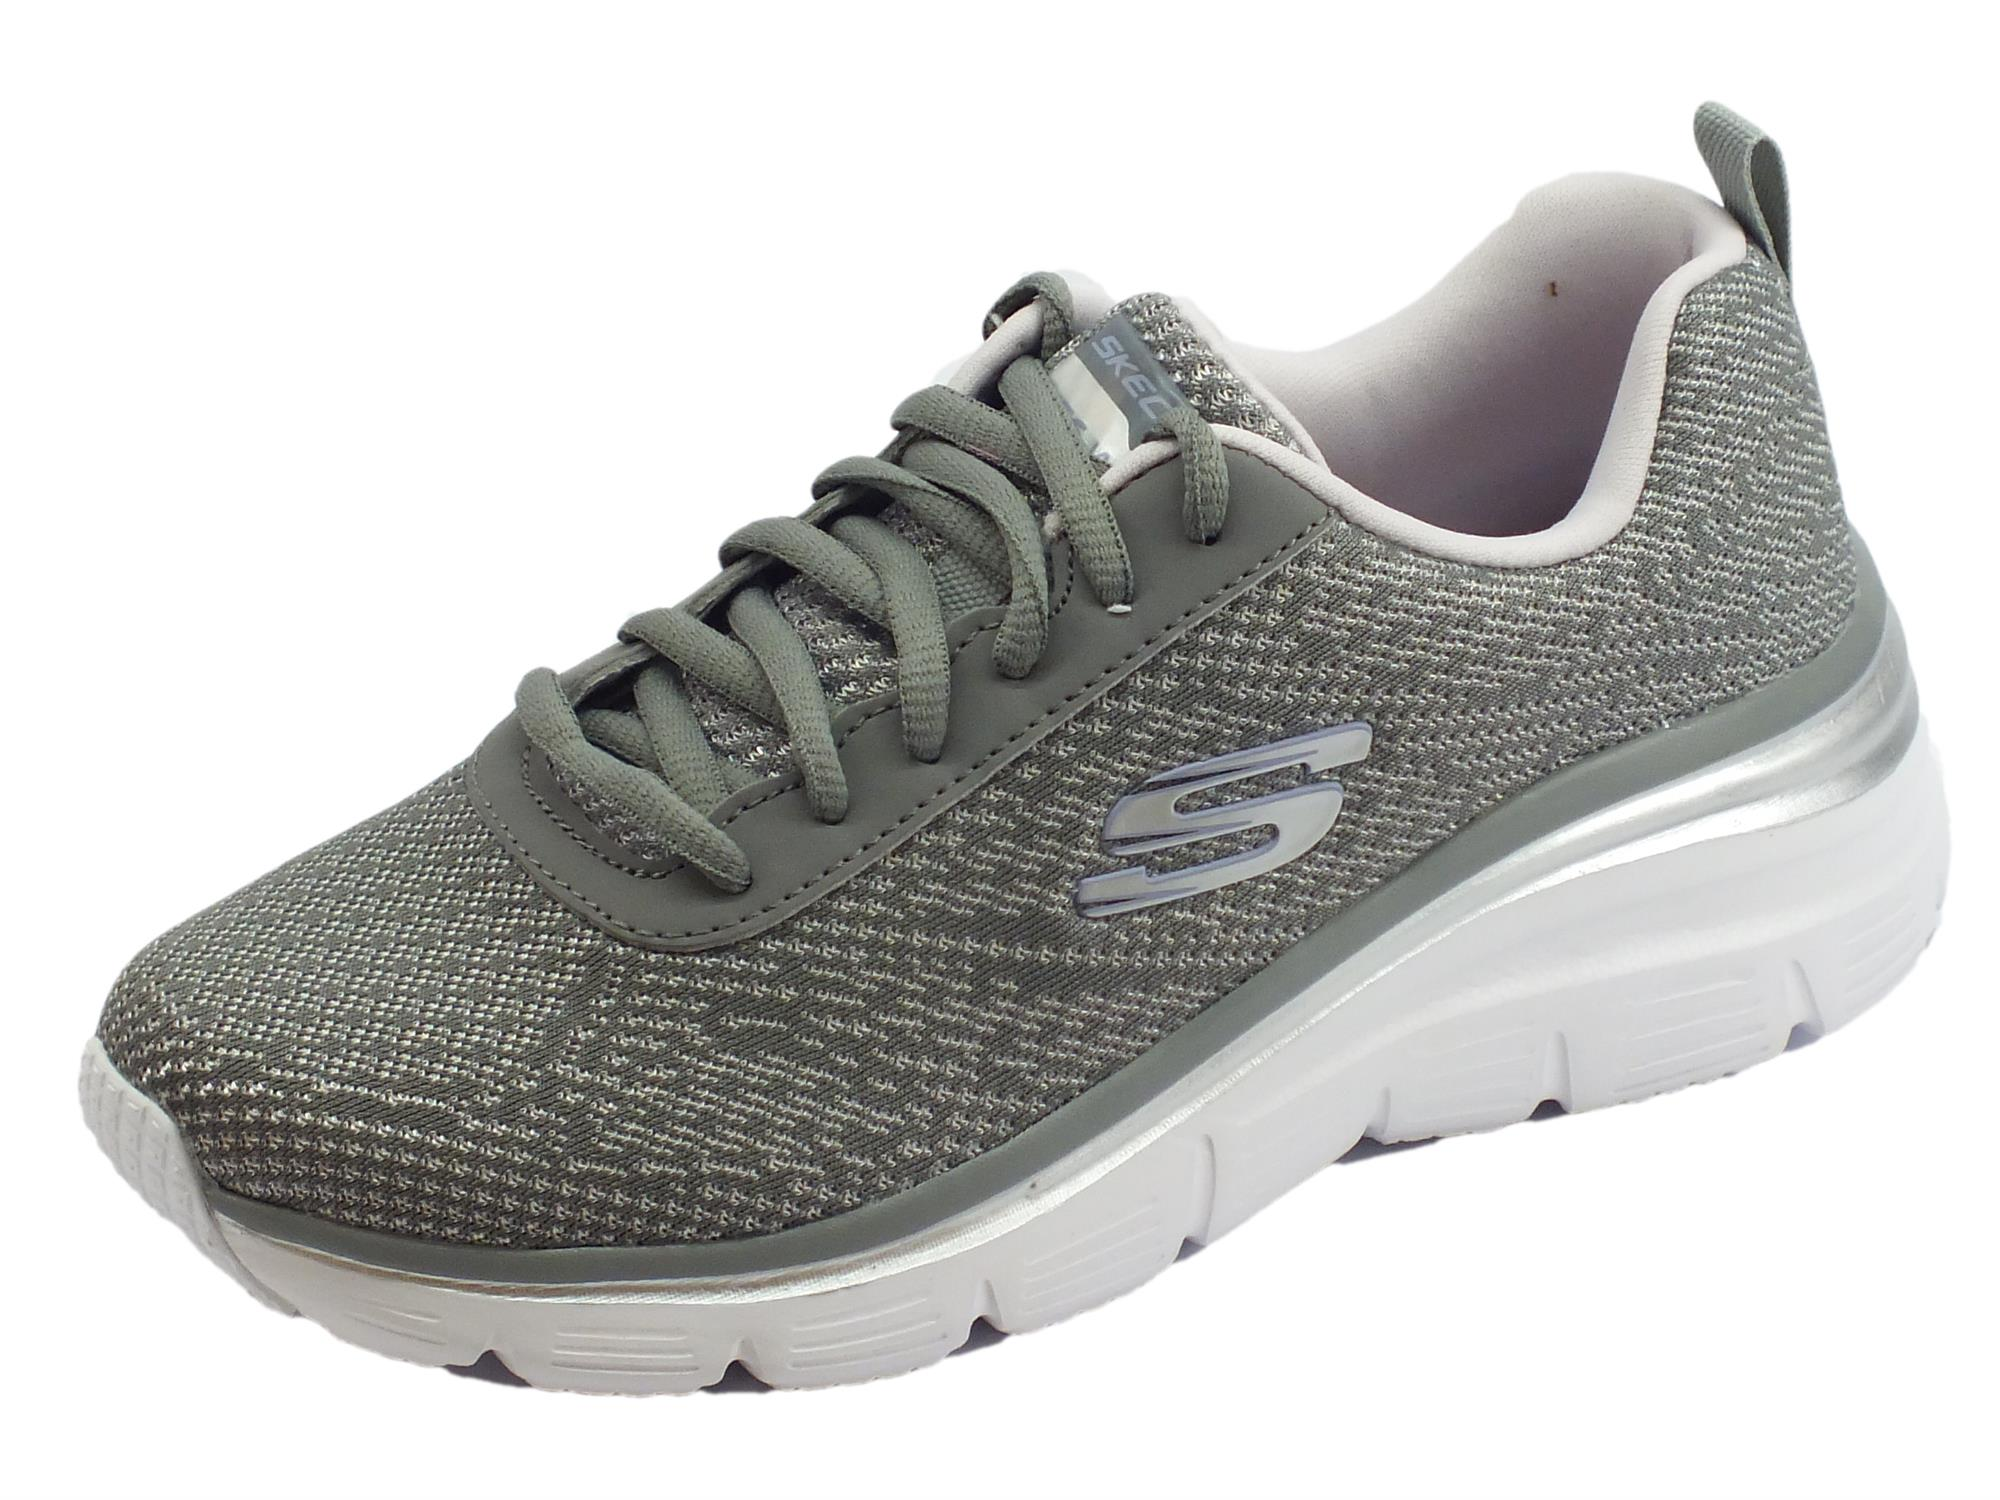 Skechers Fashion Fit Bold Boundaries Scarpe Sportive per donna grigie e  lavanda 6411085927f